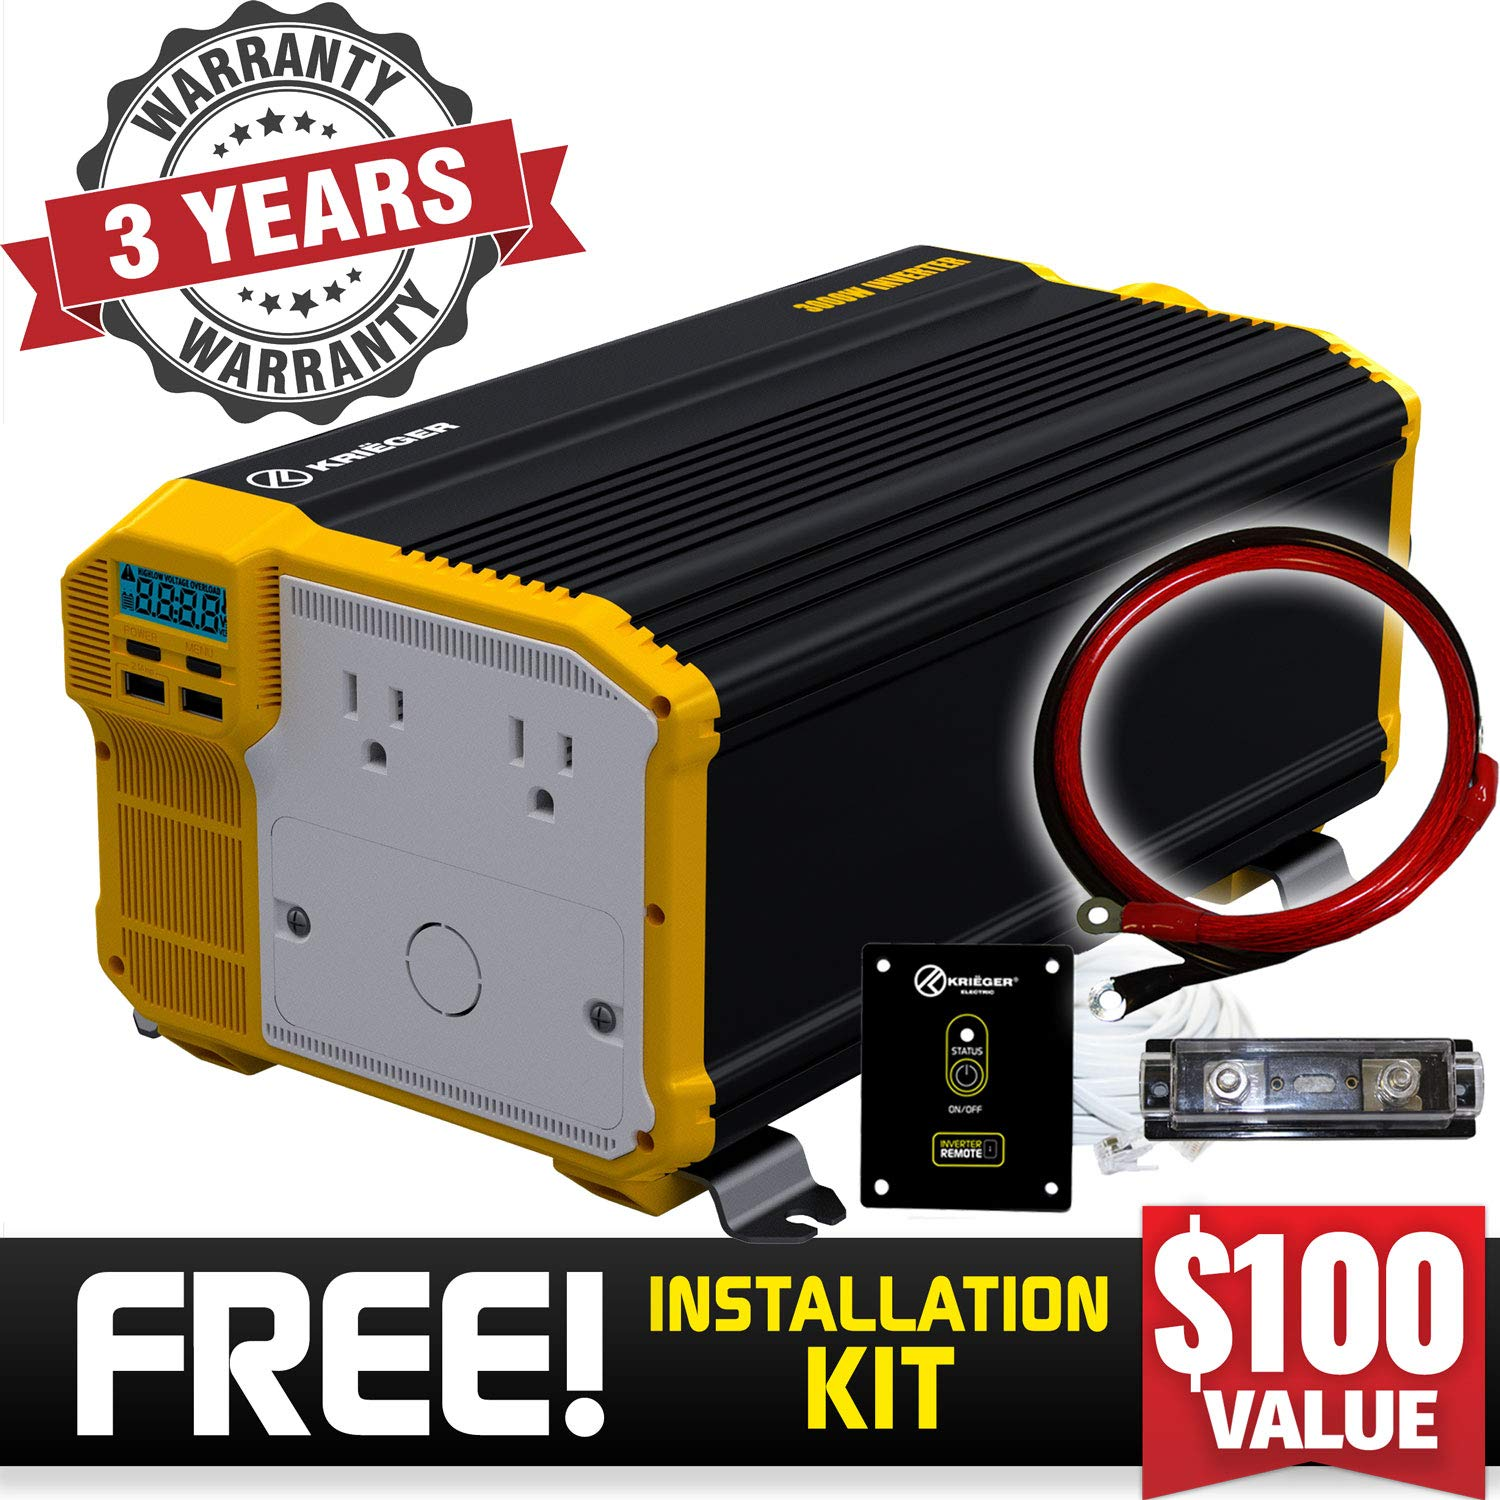 KRIËGER 3000 Watt 12V Power Inverter, Dual 110V AC outlets, Installation kit Included, Back up Power Supply for Large appliances, MET Approved According to UL and CSA Standards.